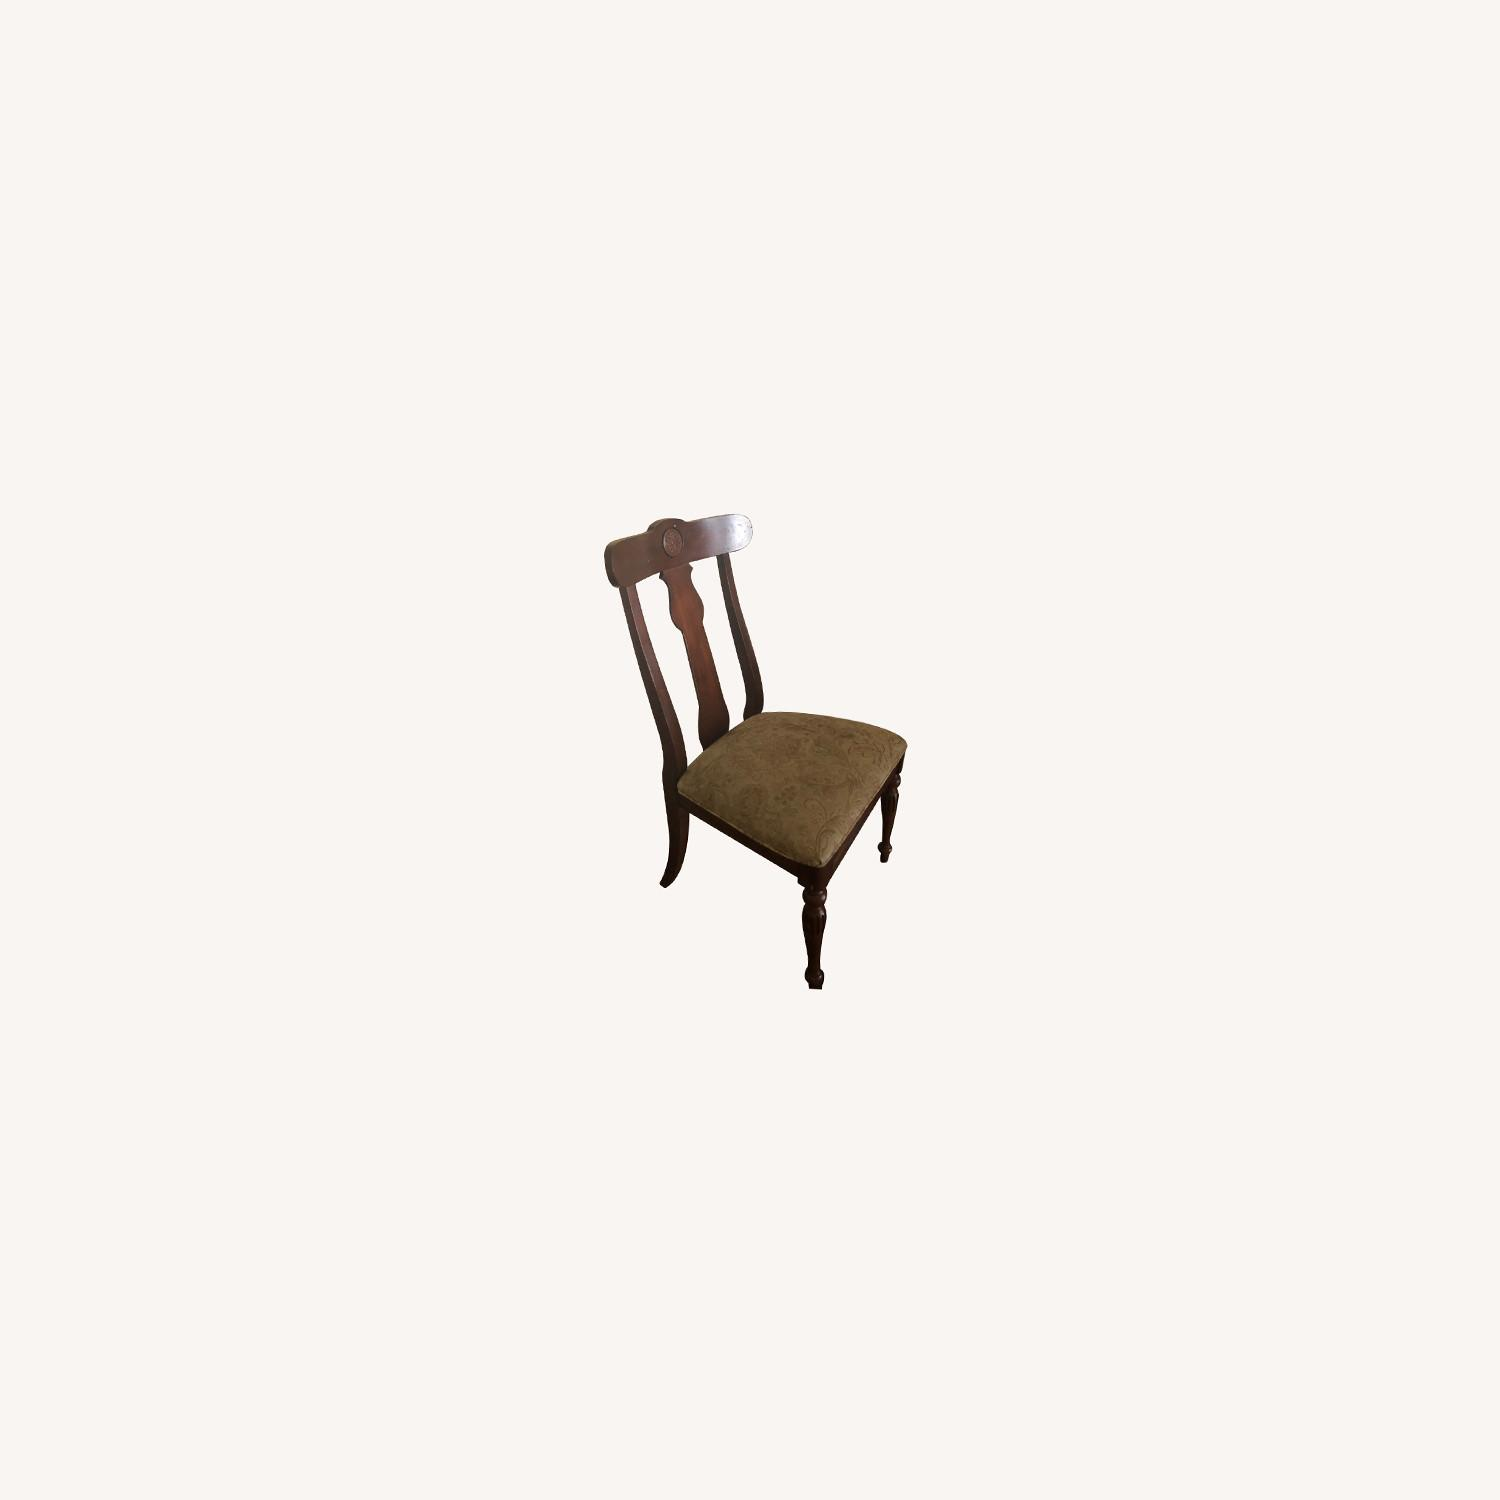 Ethan Allen Dining Room Chairs - image-6